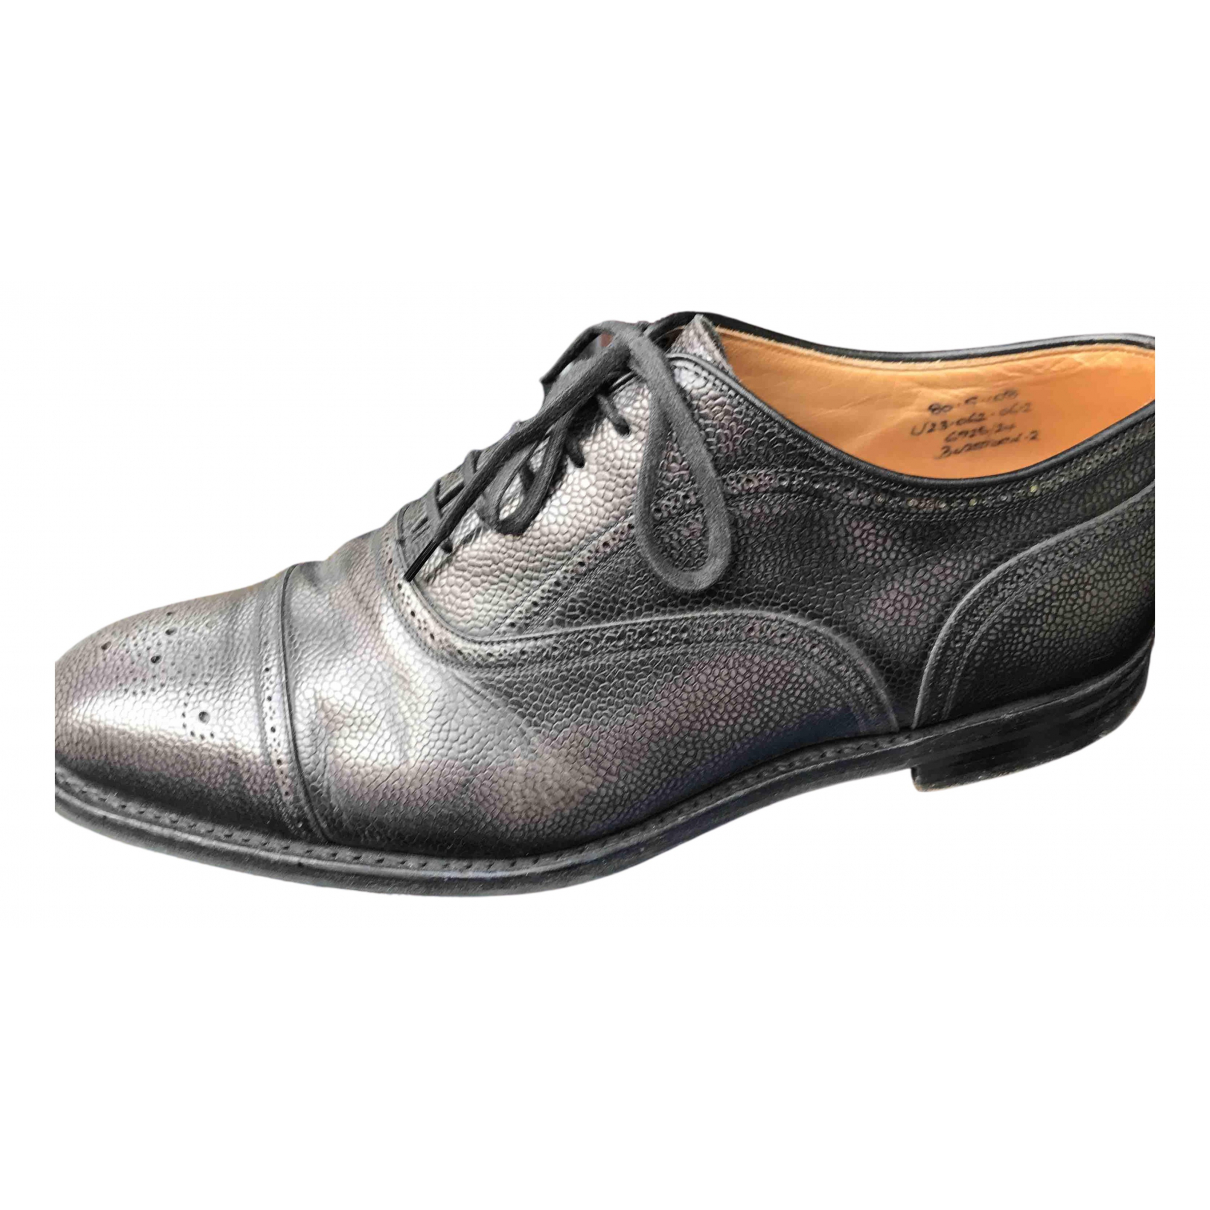 Church's N Grey Leather Lace ups for Men 42 EU